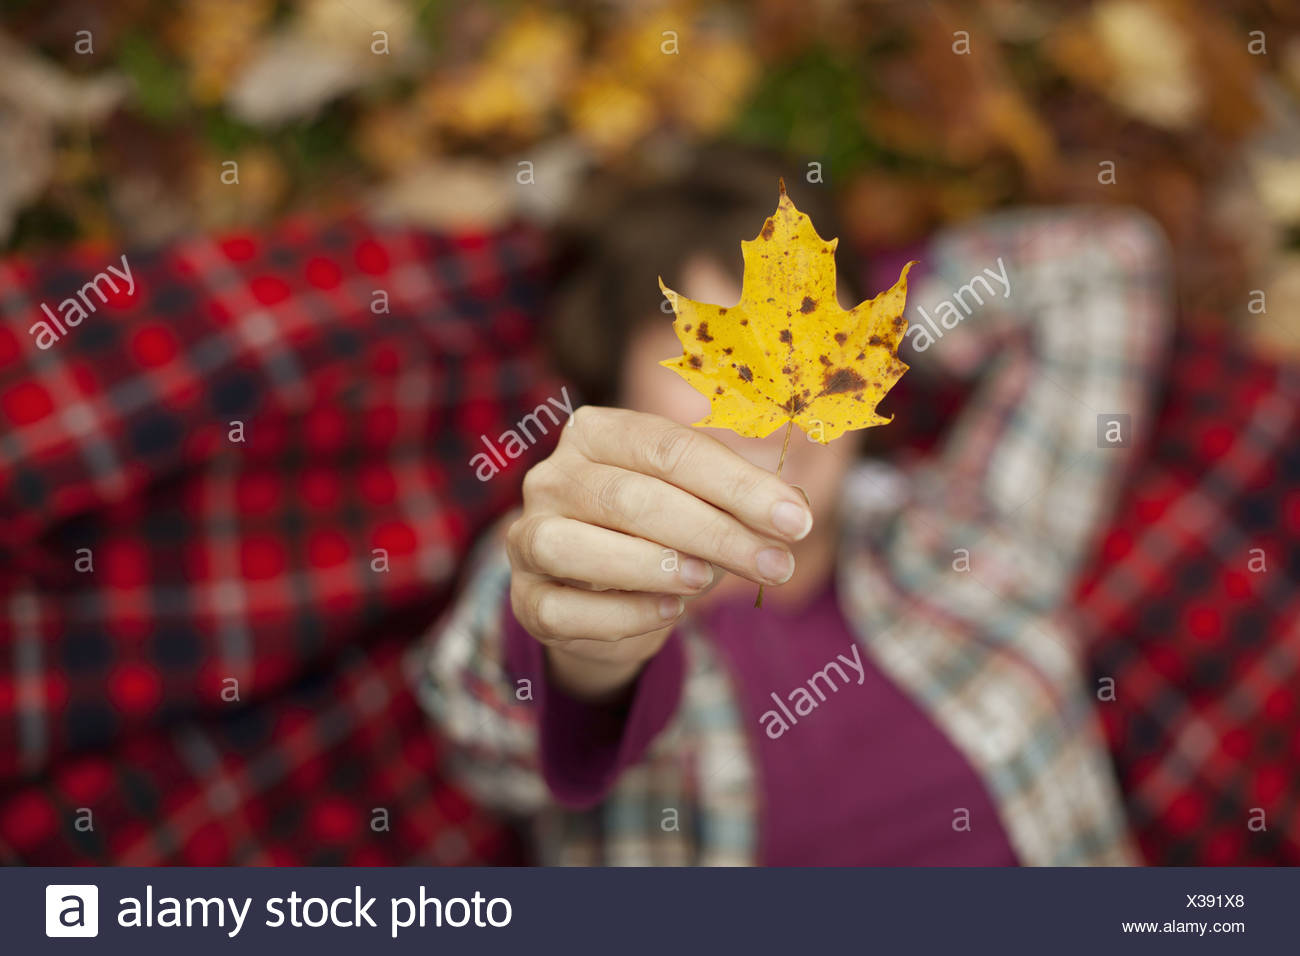 A woman lying on a red tartan picnic blanket, looking upwards, holding a maple leaf. Stock Photo